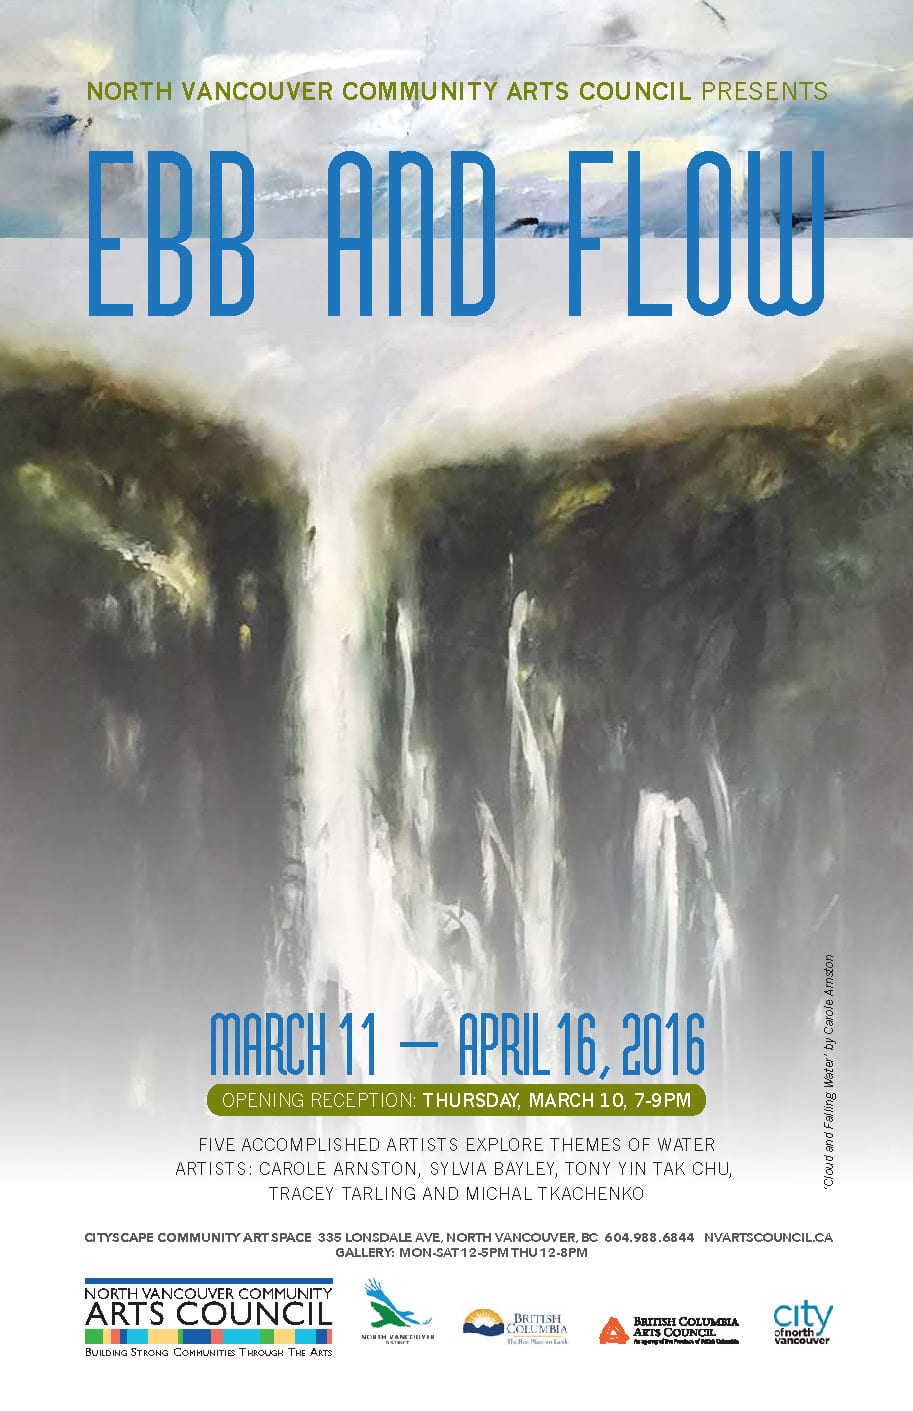 Ebb and Flow an Exhibition at the CityScape Community Arts Space North Vancouver